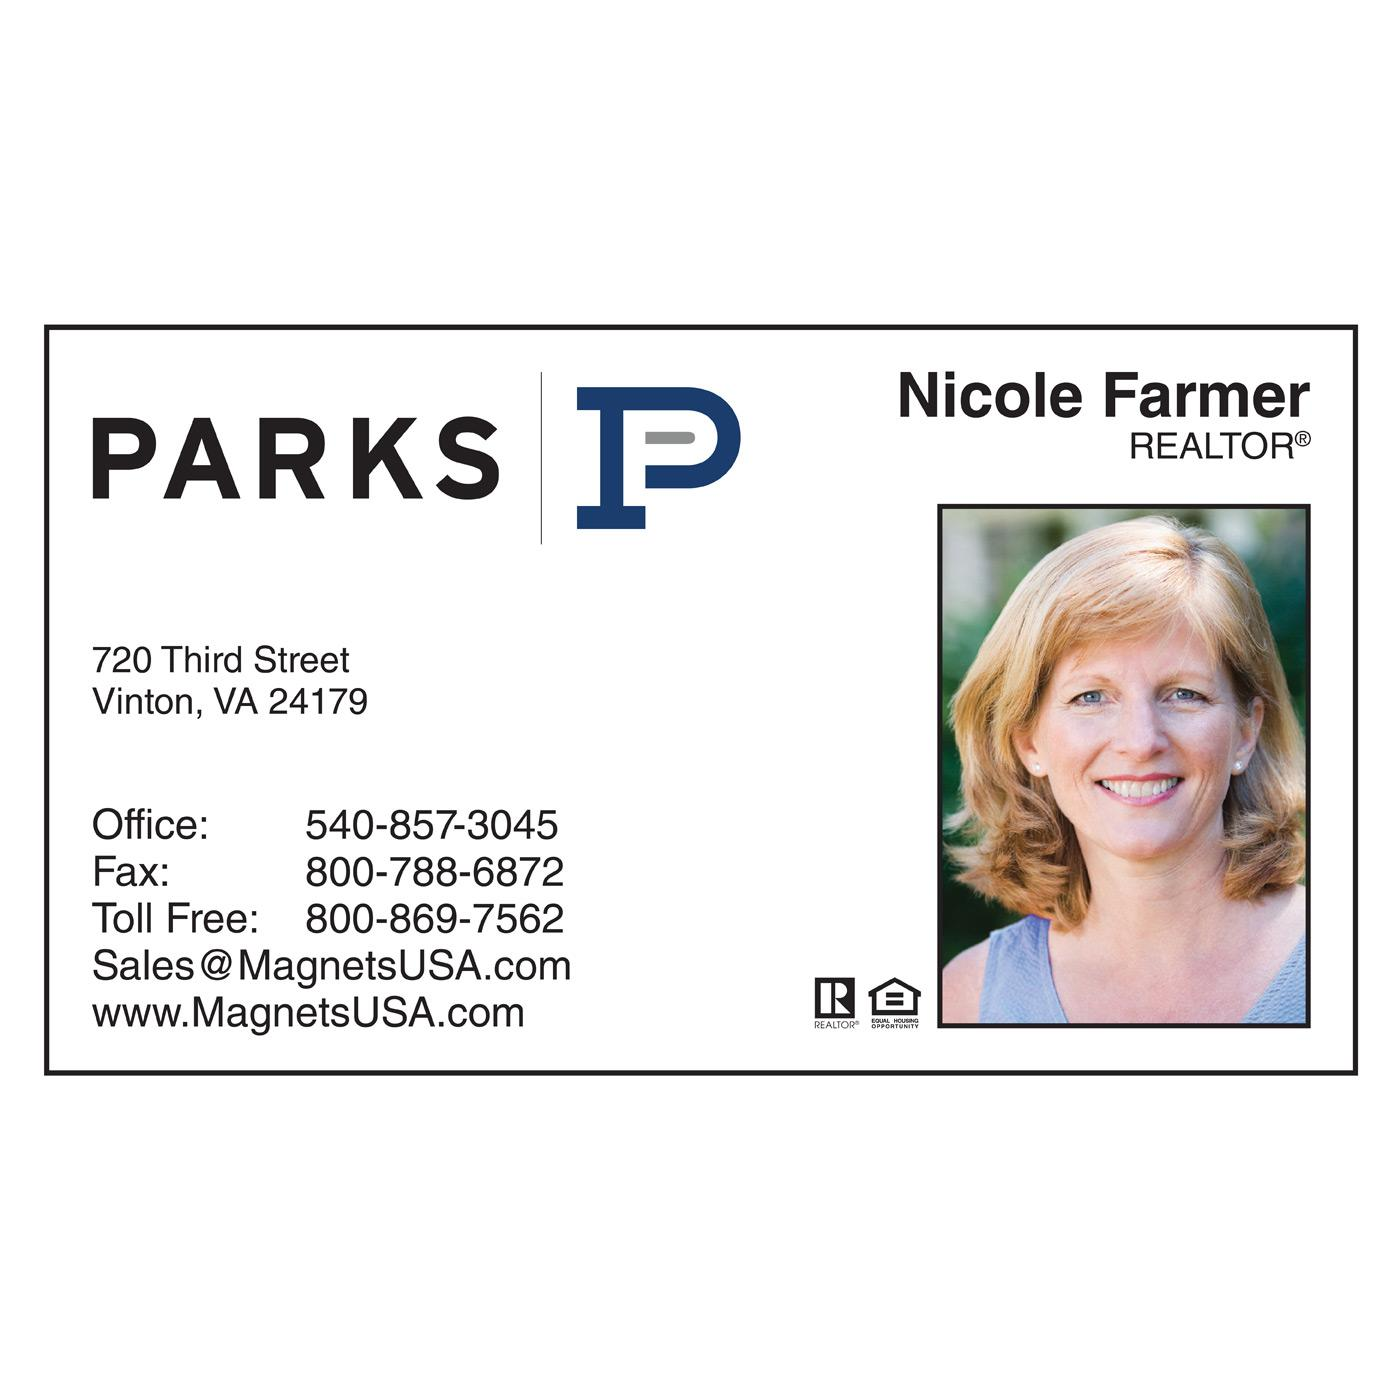 Parks Realty Paper Business Card